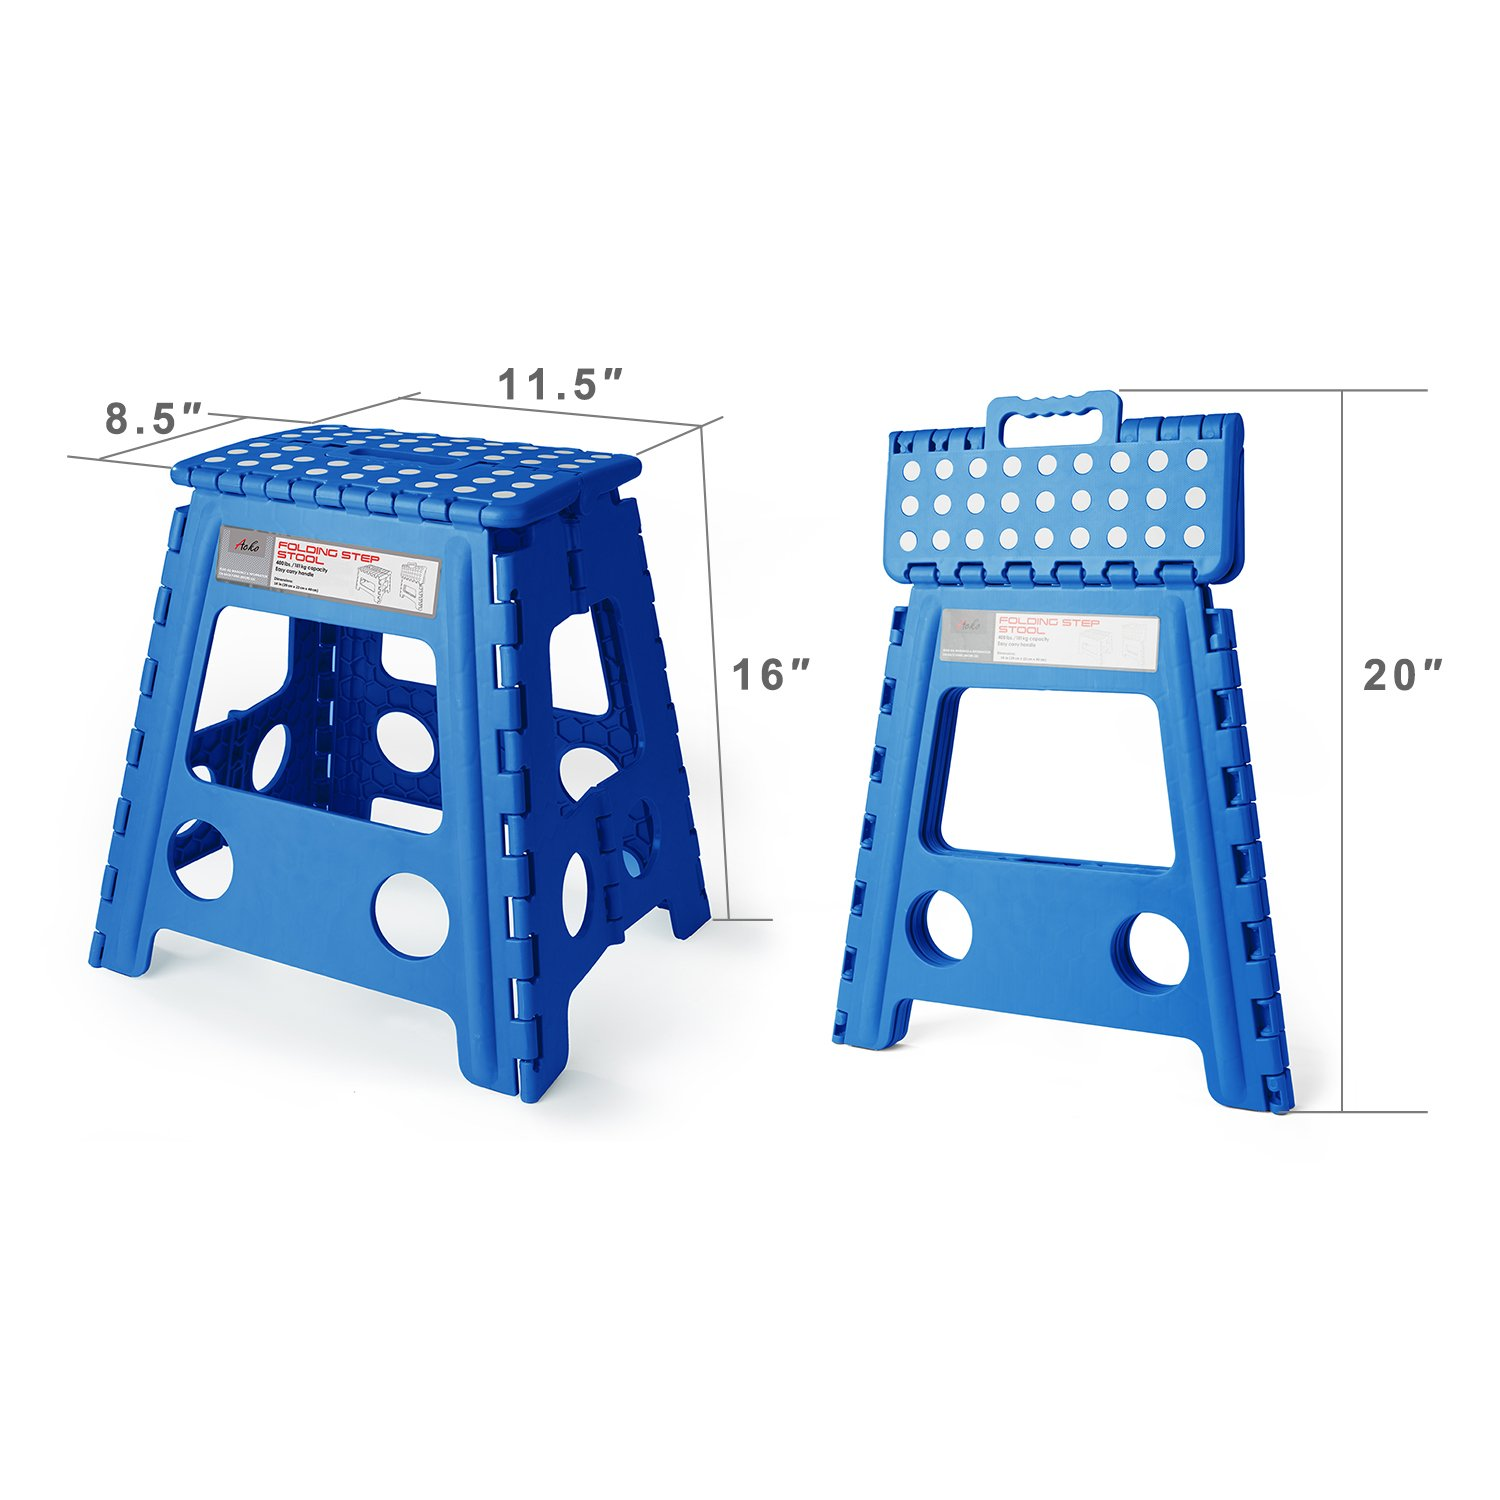 Acko 16 Inch Super Strong Folding Step Stool for Adults and Kids Kitchen Garden Usage Blue by Acko (Image #2)